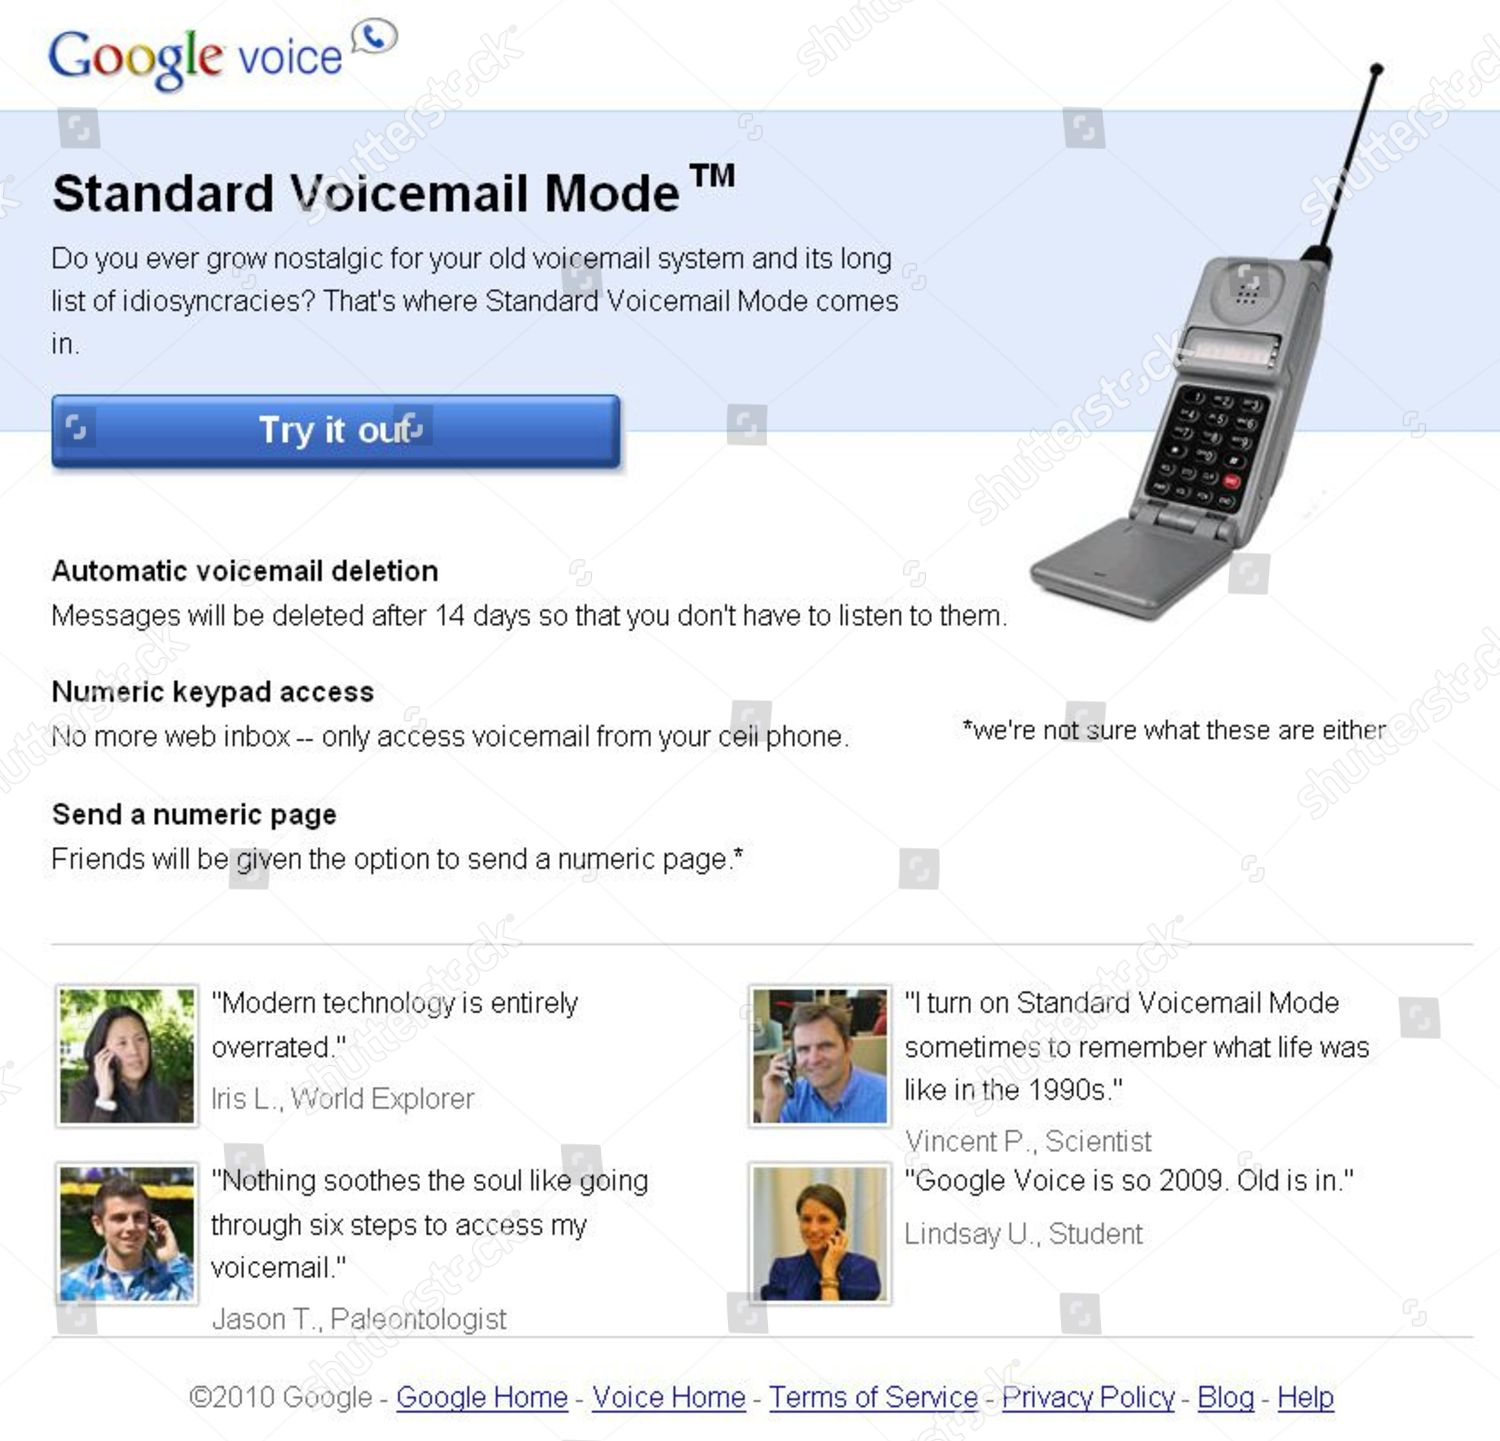 google introduces standard voicemail